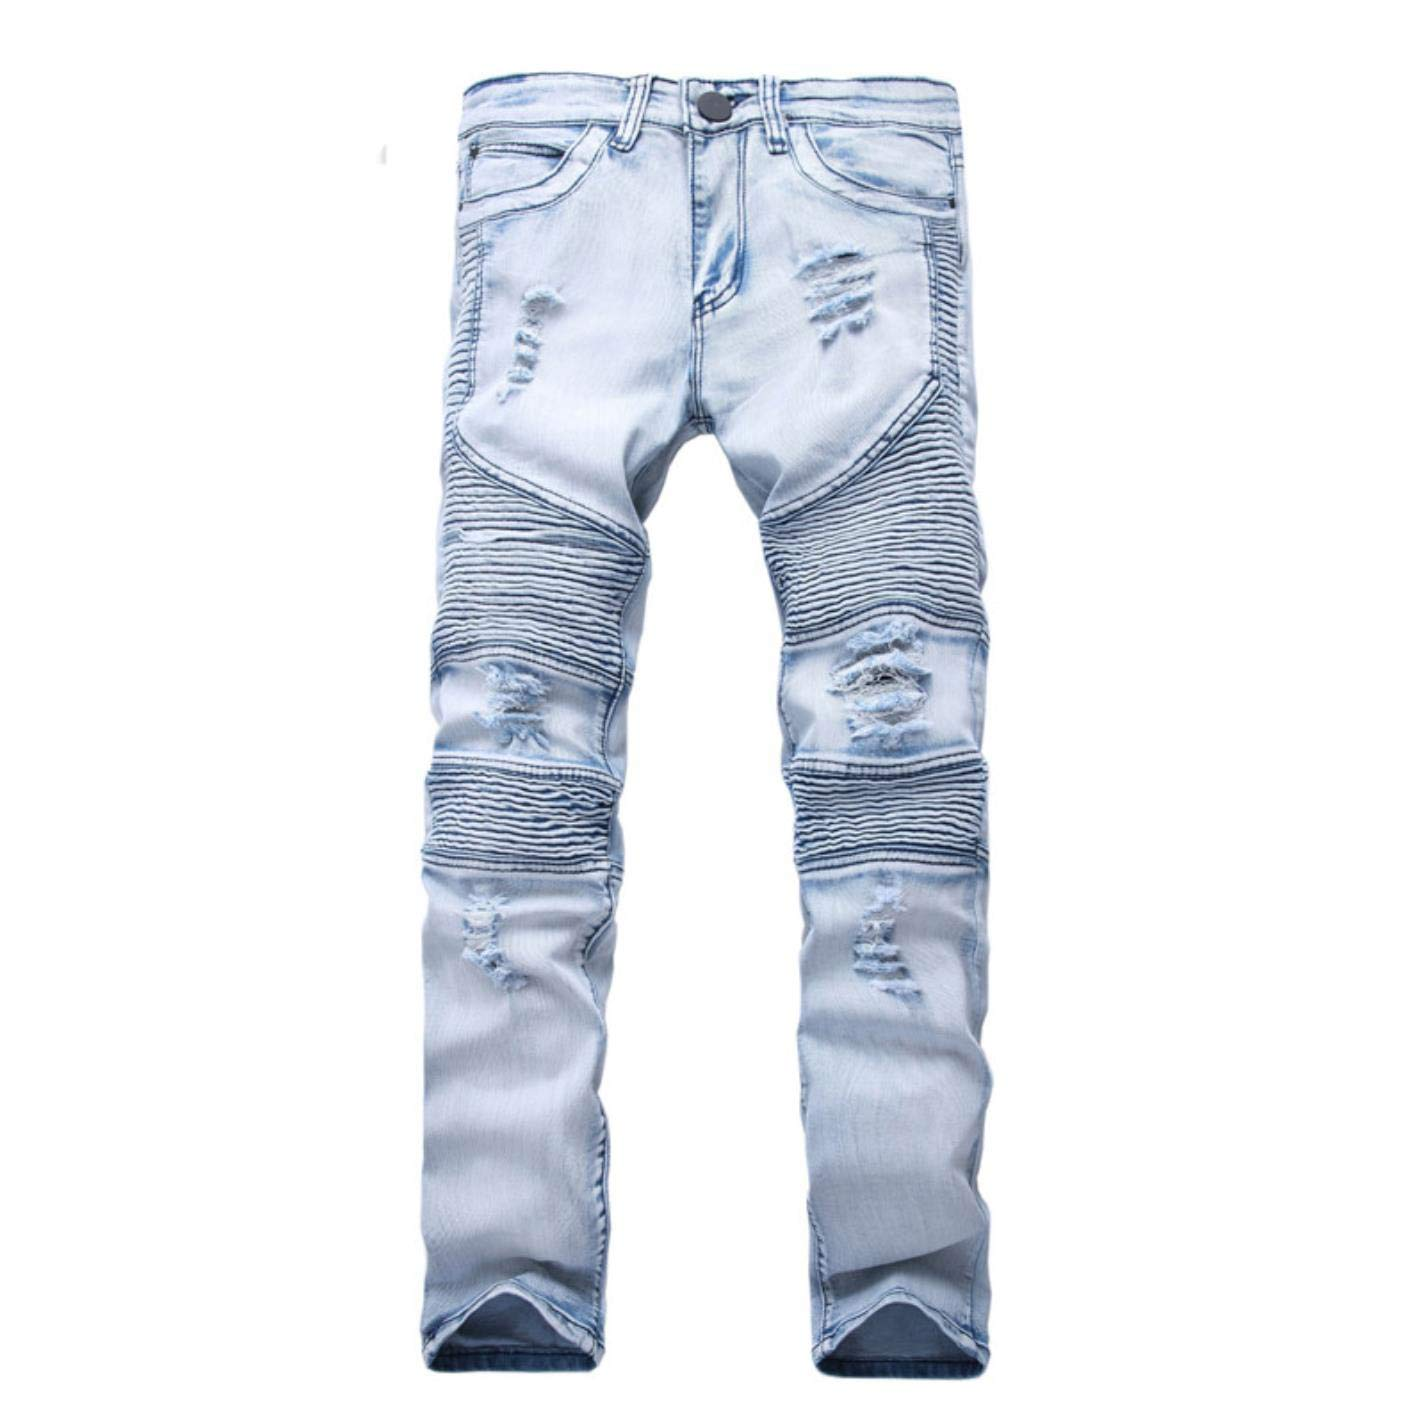 kjPmgDxK Mens Skinny Slim Elastic Denim Hip HopWashed Ripped Plus Size Jeans